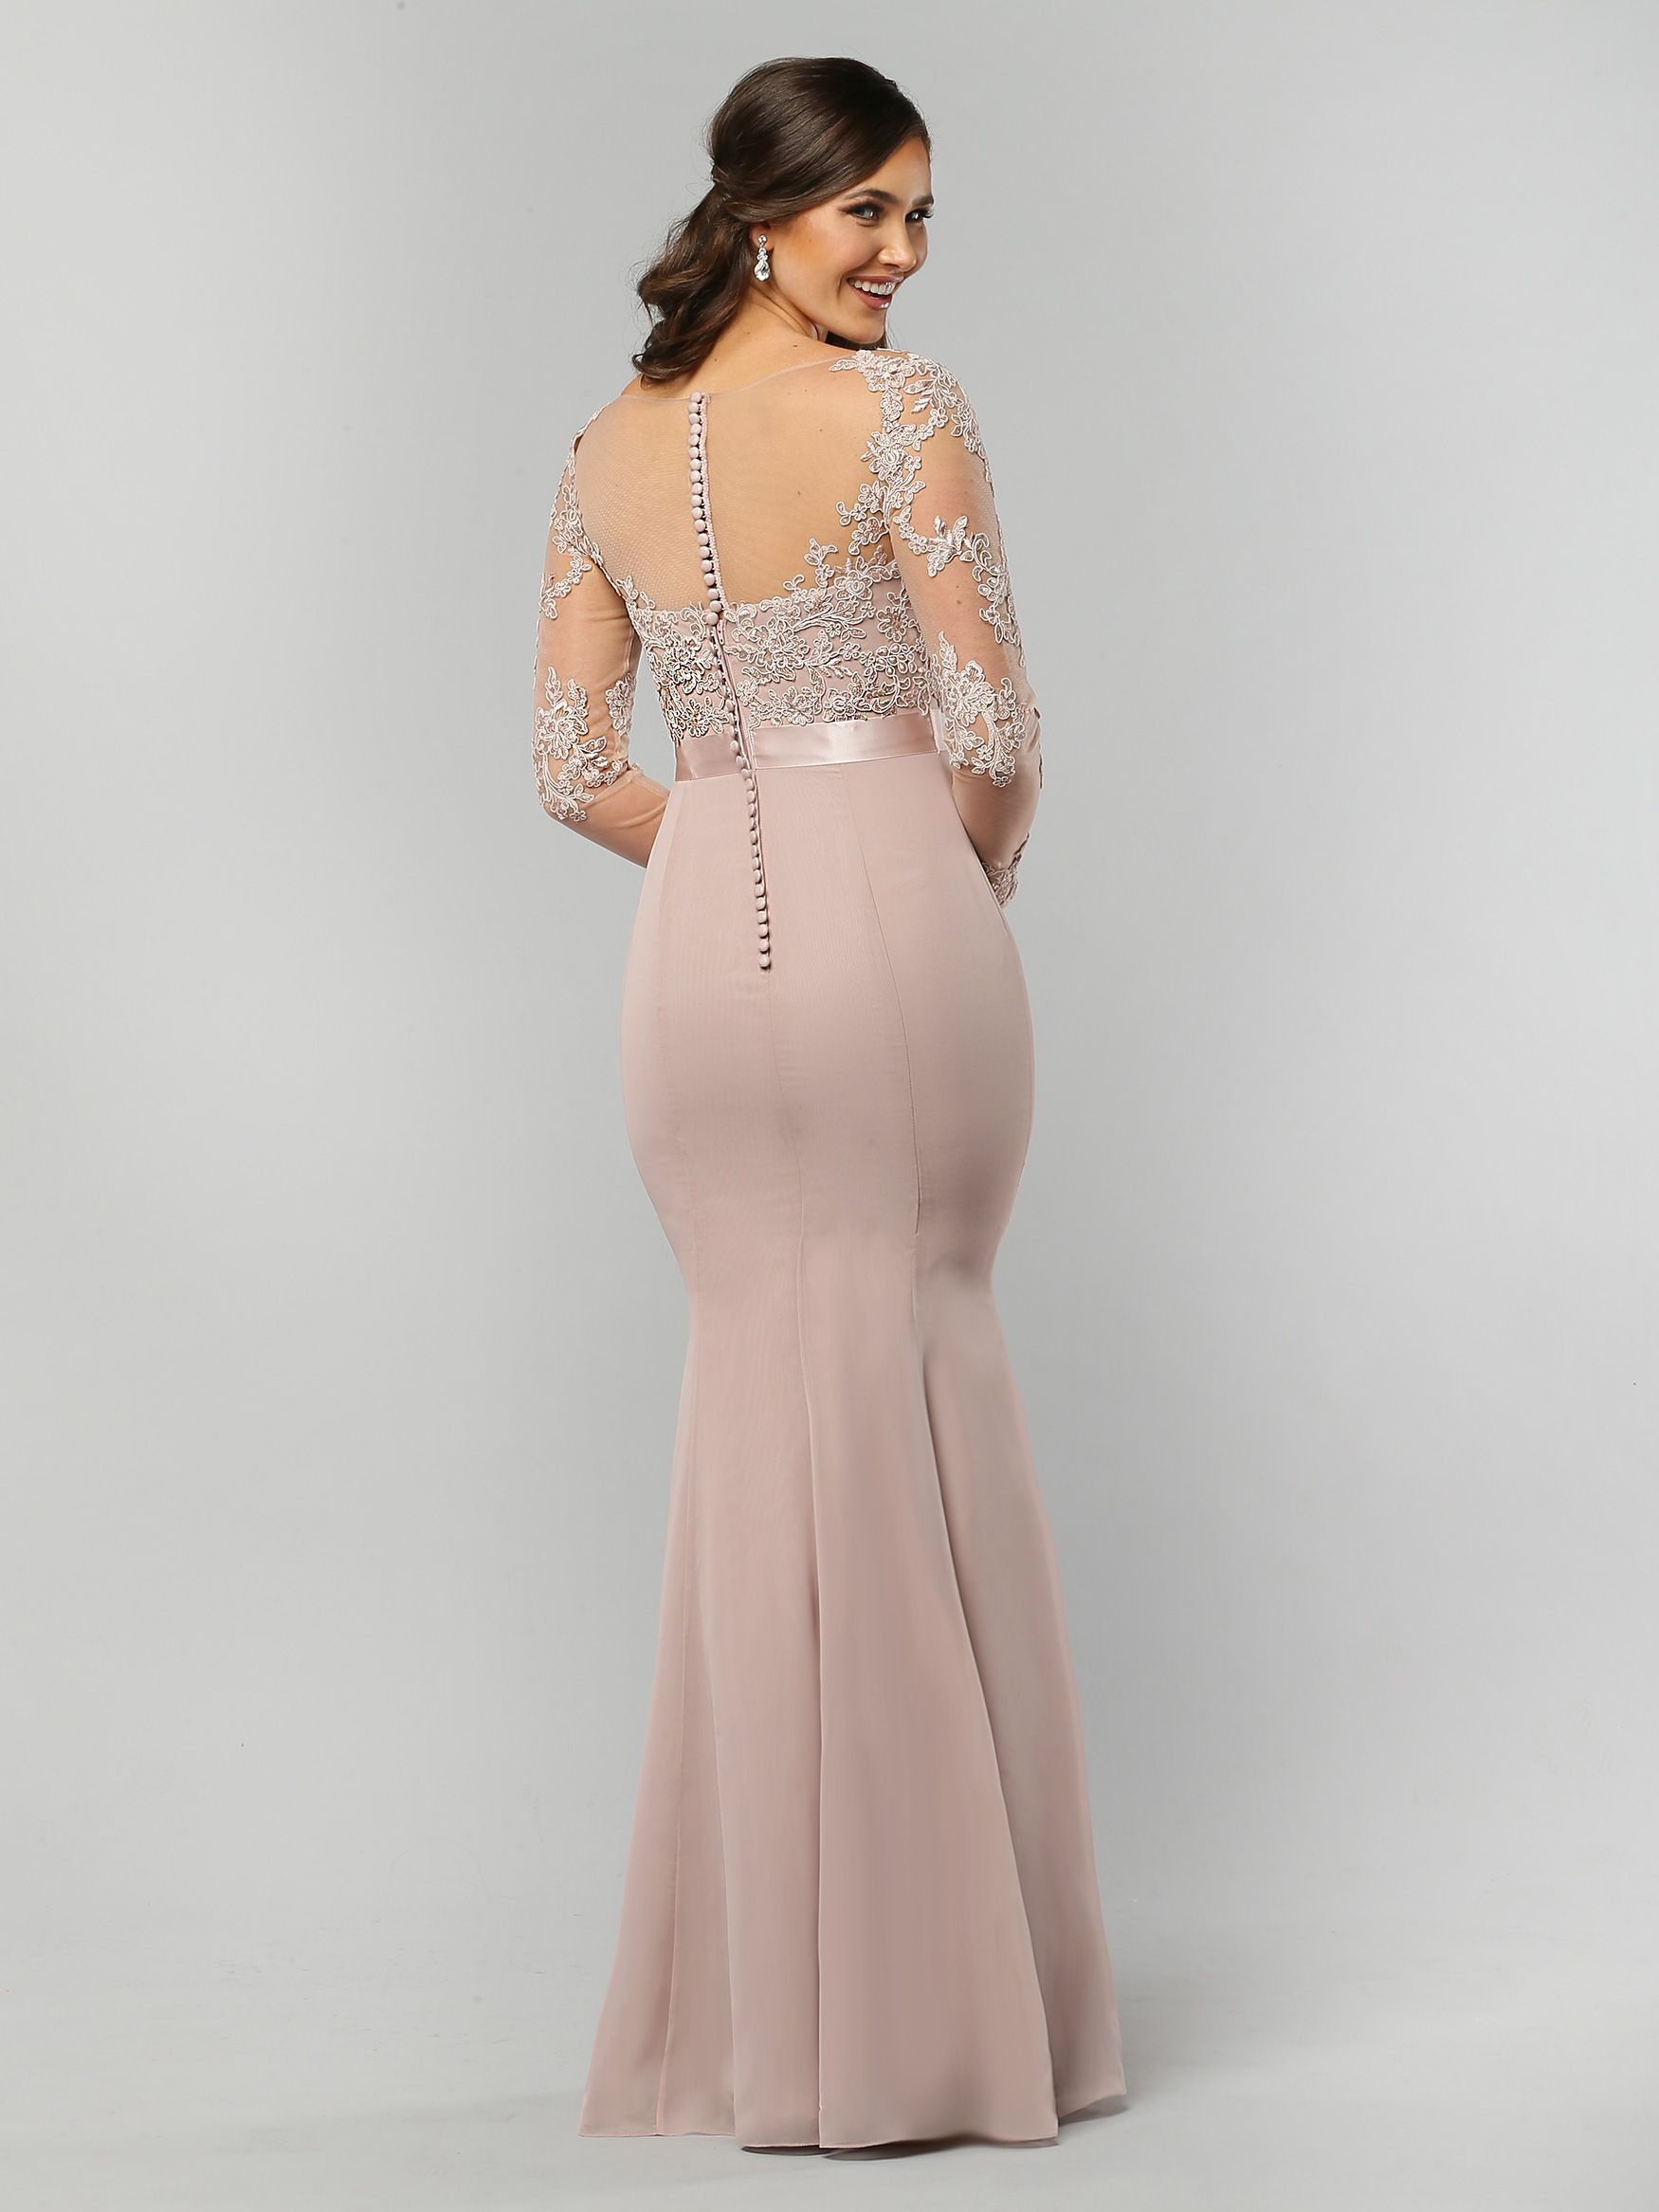 Style 60327 davinci wedding dresses davinici bridesmaid davinci bridal is your ultimate destination for bridesmaid dresses designer wedding gowns and best bridal dresses online ombrellifo Image collections